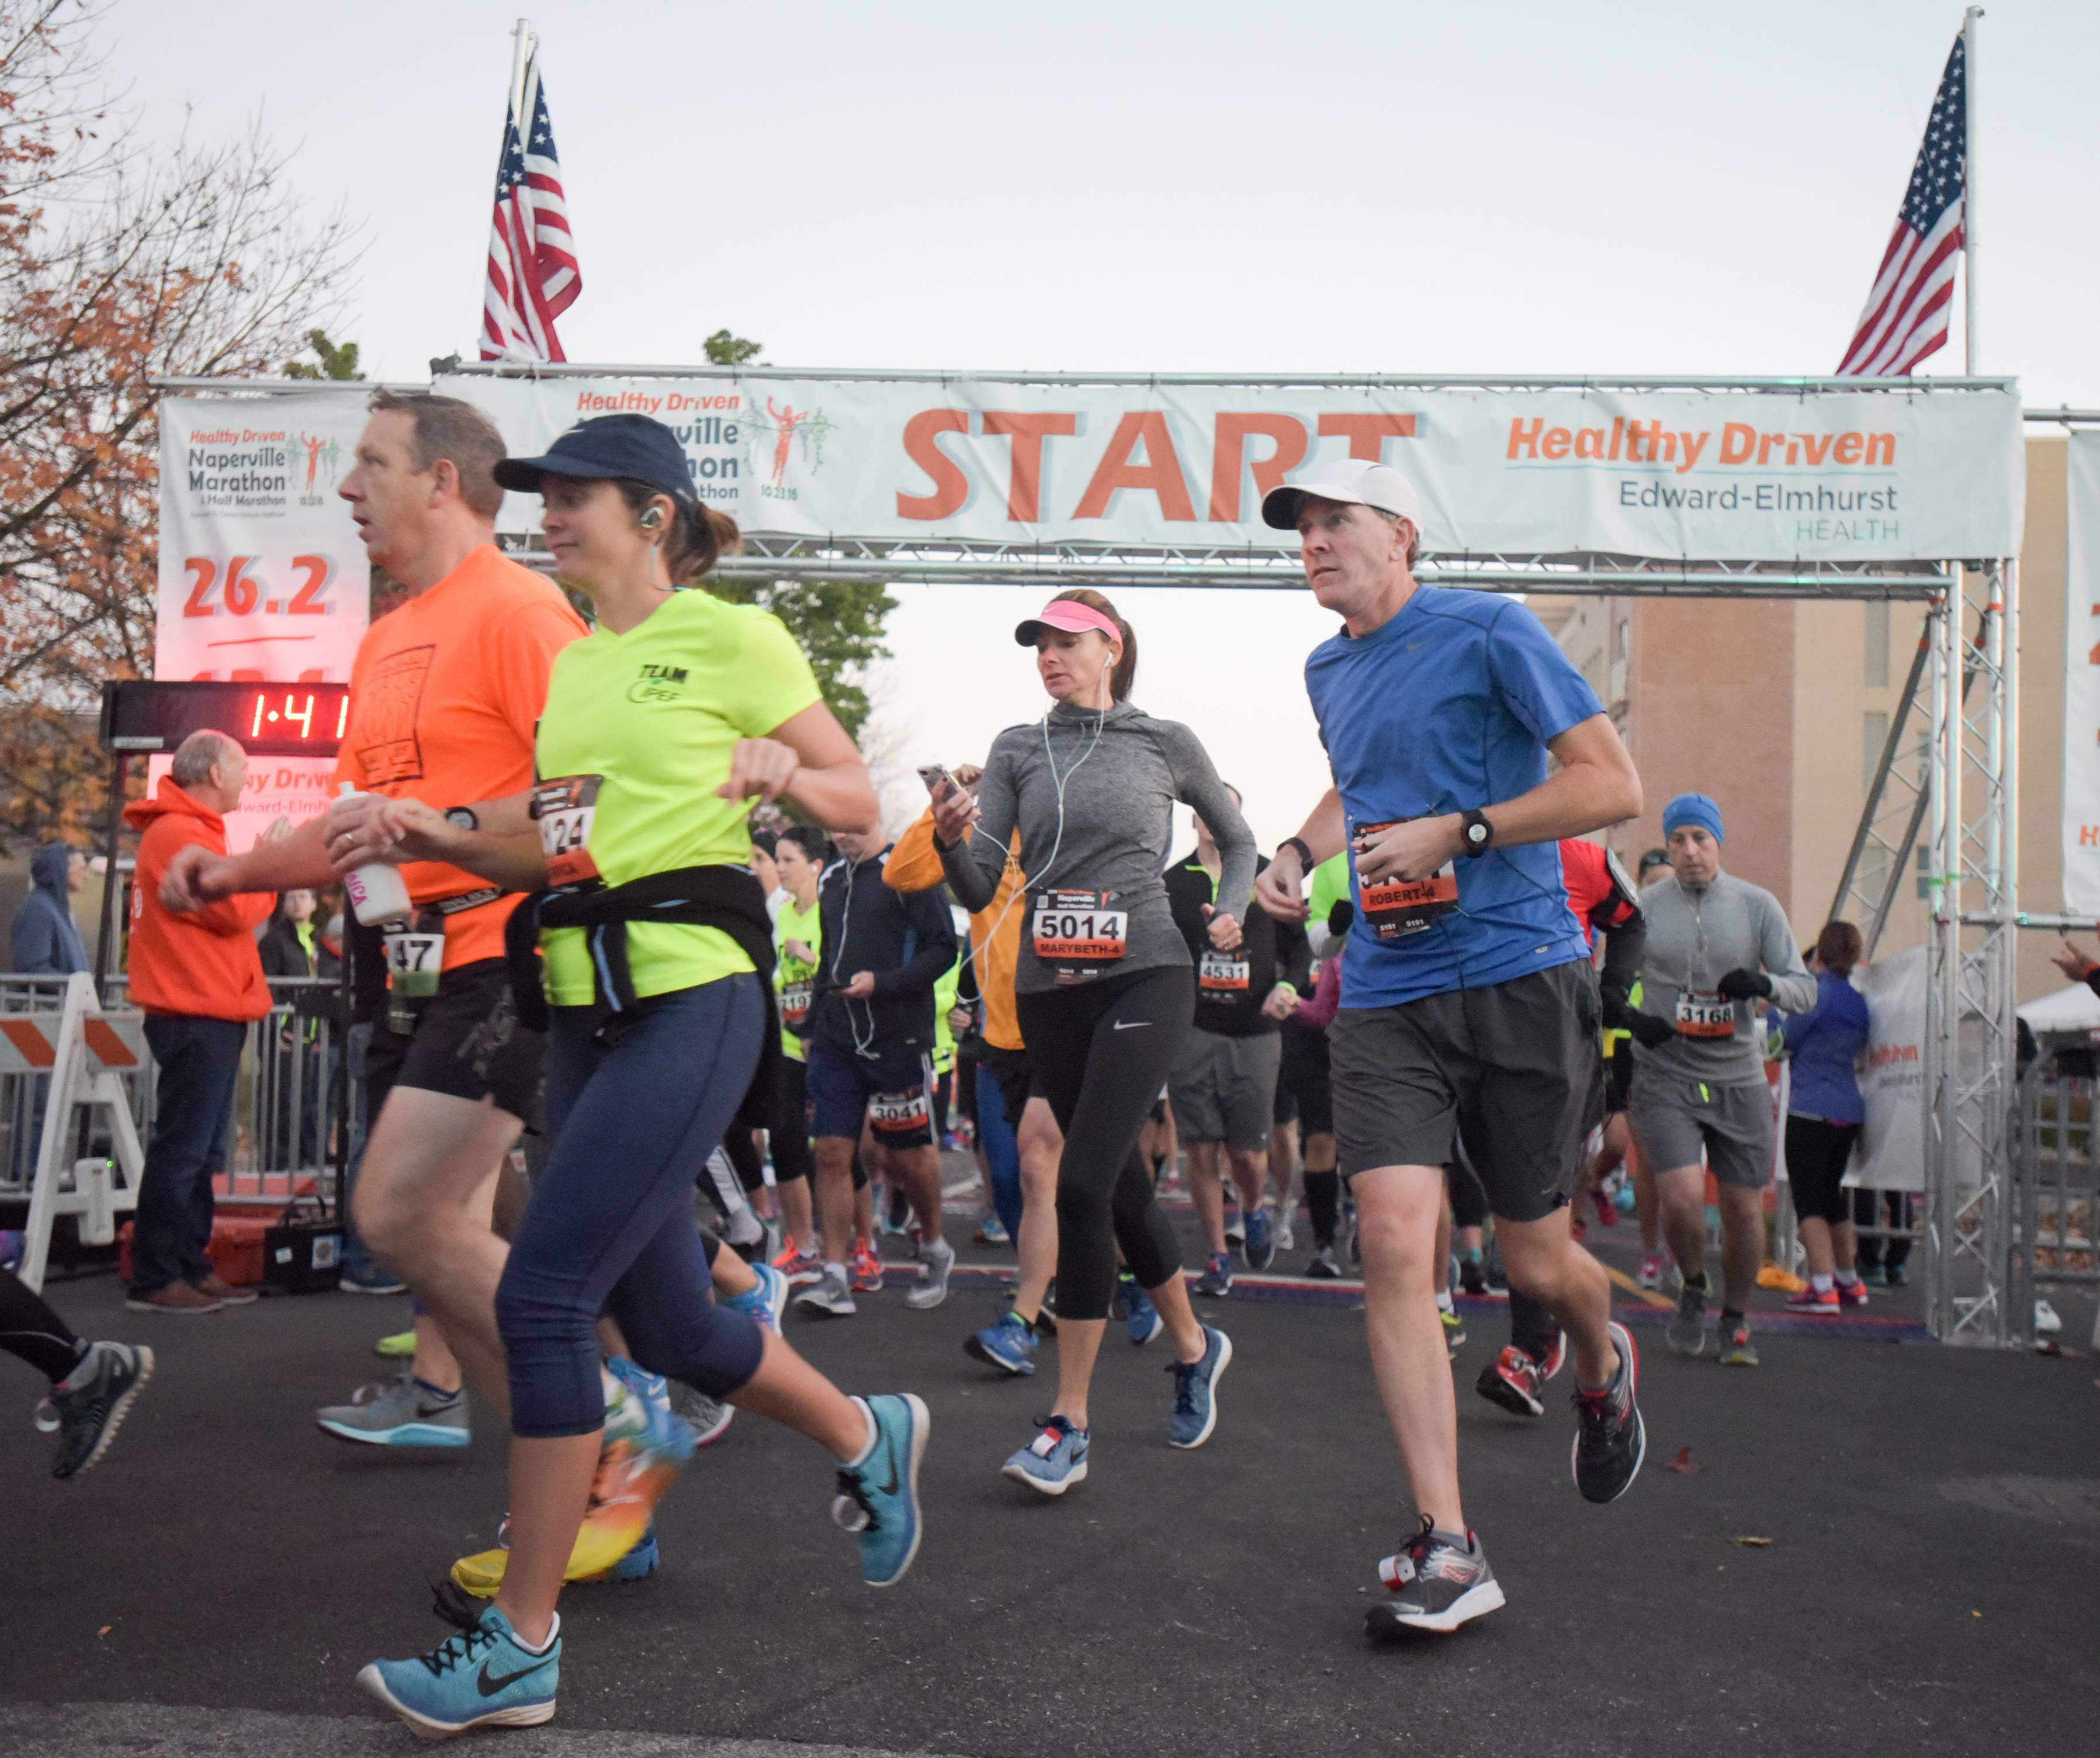 Expect road closures Sunday for Naperville half marathon, 5K